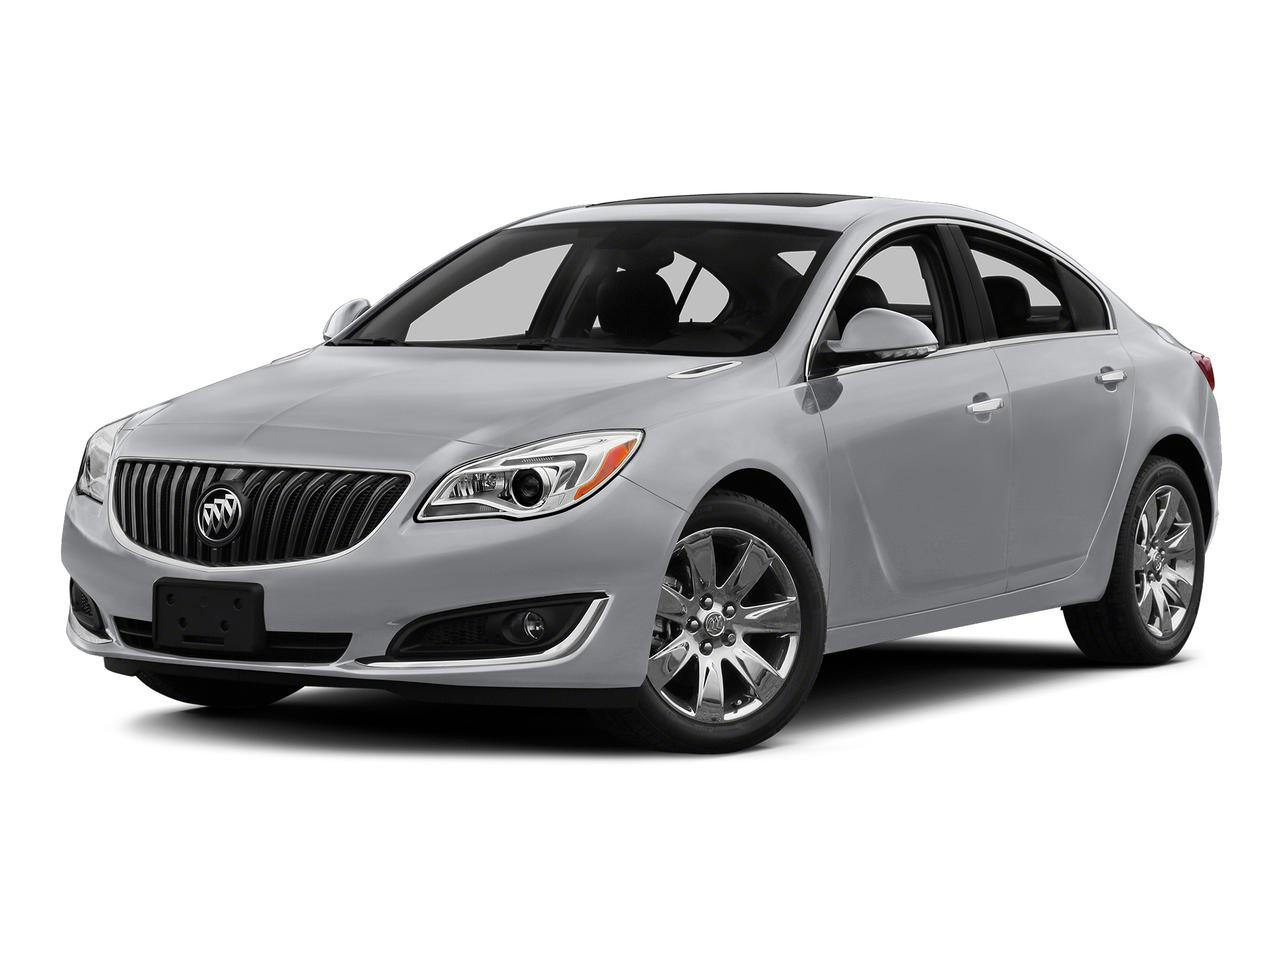 2015 Buick Regal Vehicle Photo in Mukwonago, WI 53149